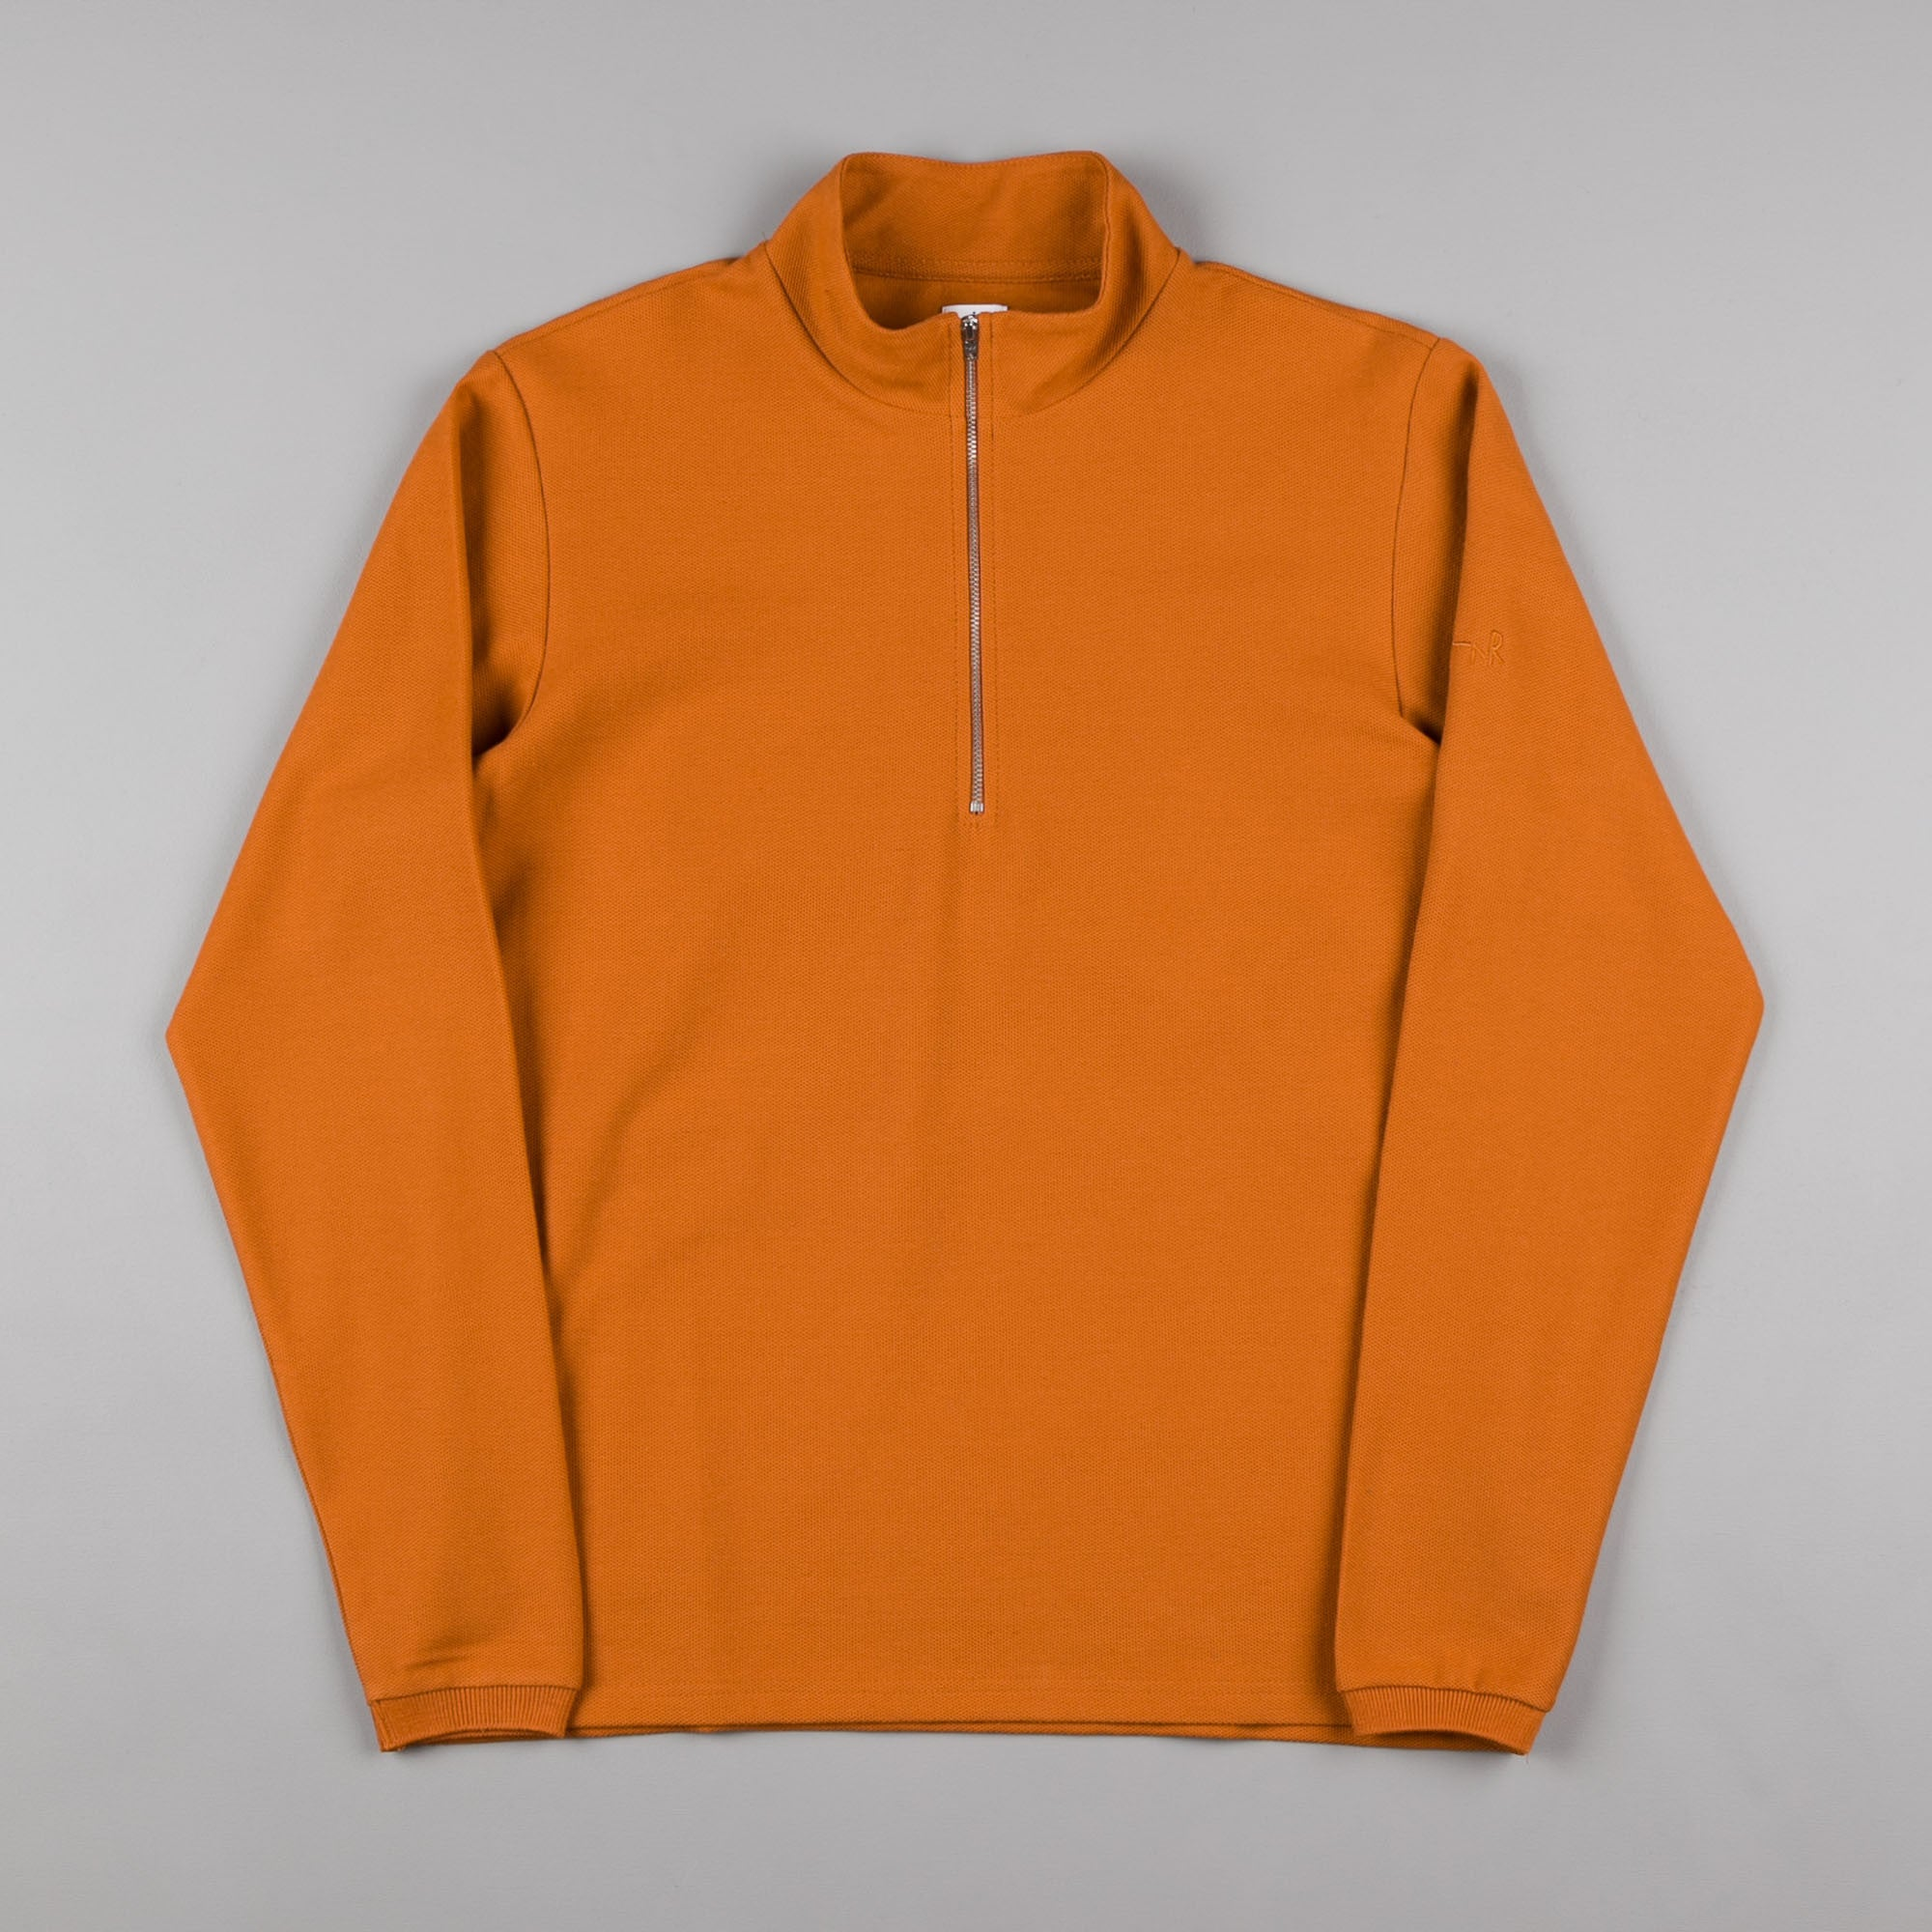 Polar Pique Zip Neck Shirt - Caramel